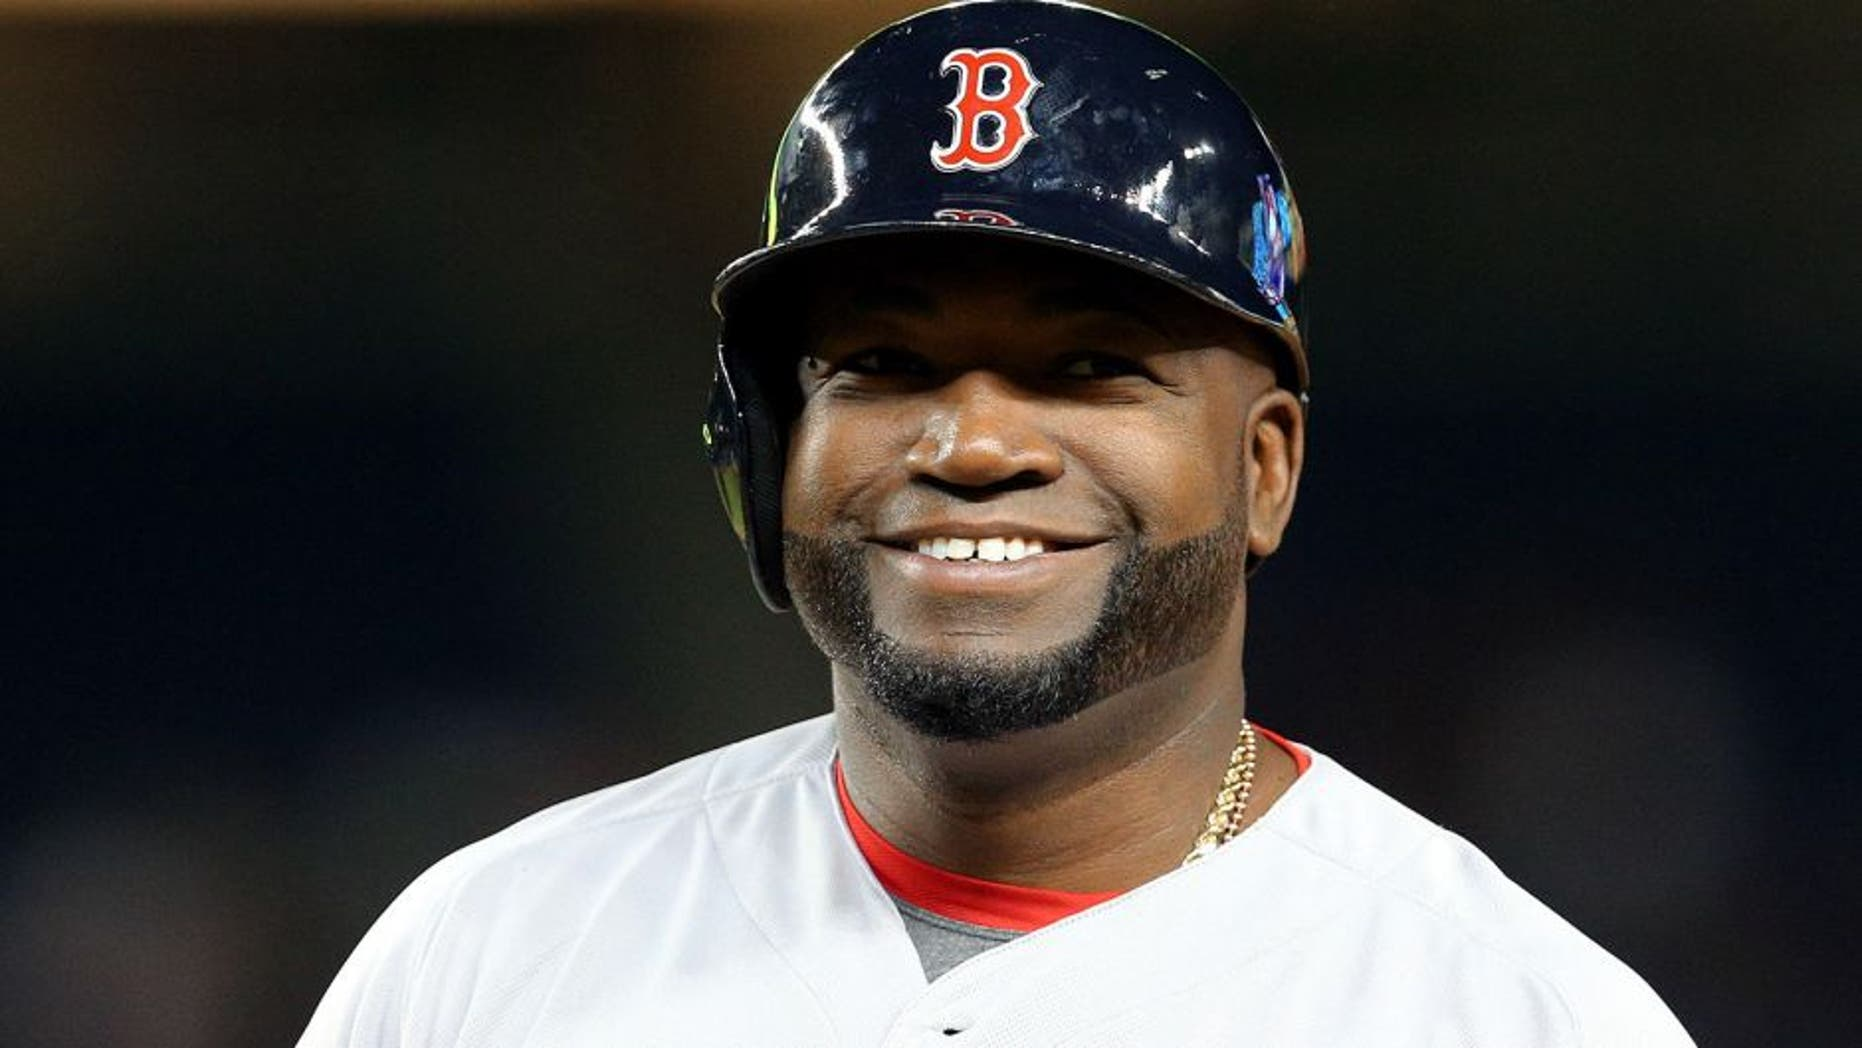 Sep 30, 2015; Bronx, NY, USA; Boston Red Sox designated hitter David Ortiz (34) reacts after hitting an RBI single against the New York Yankees during the third inning at Yankee Stadium. Mandatory Credit: Brad Penner-USA TODAY Sports